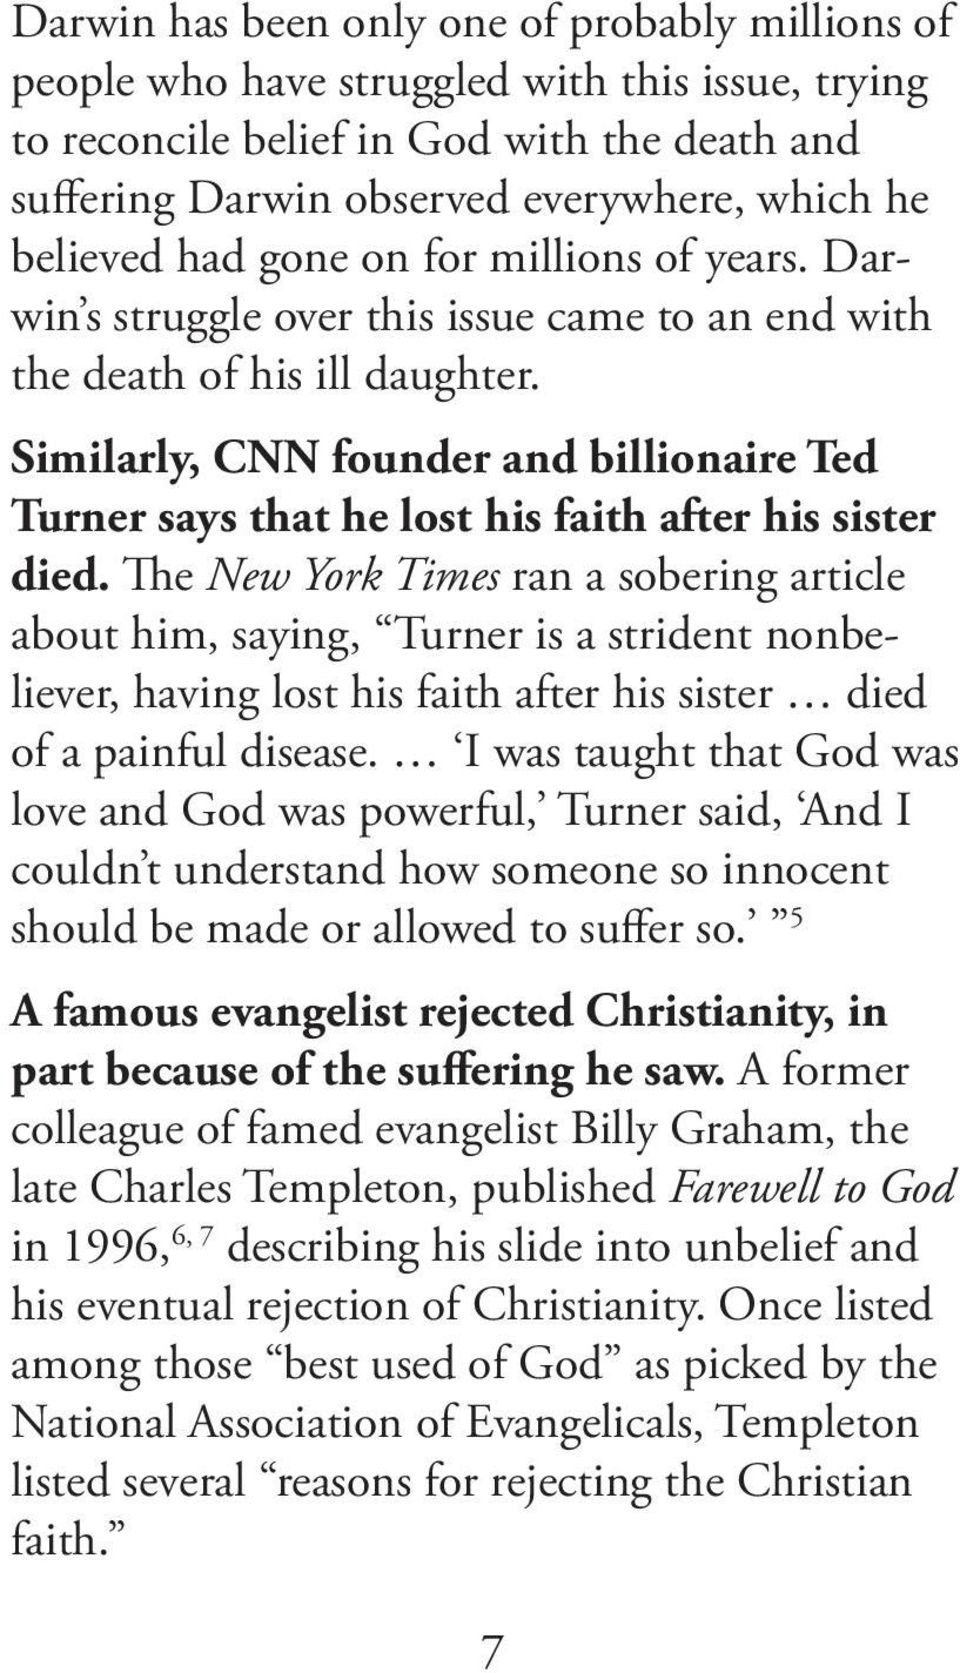 Similarly, CNN founder and billionaire Ted Turner says that he lost his faith after his sister died.